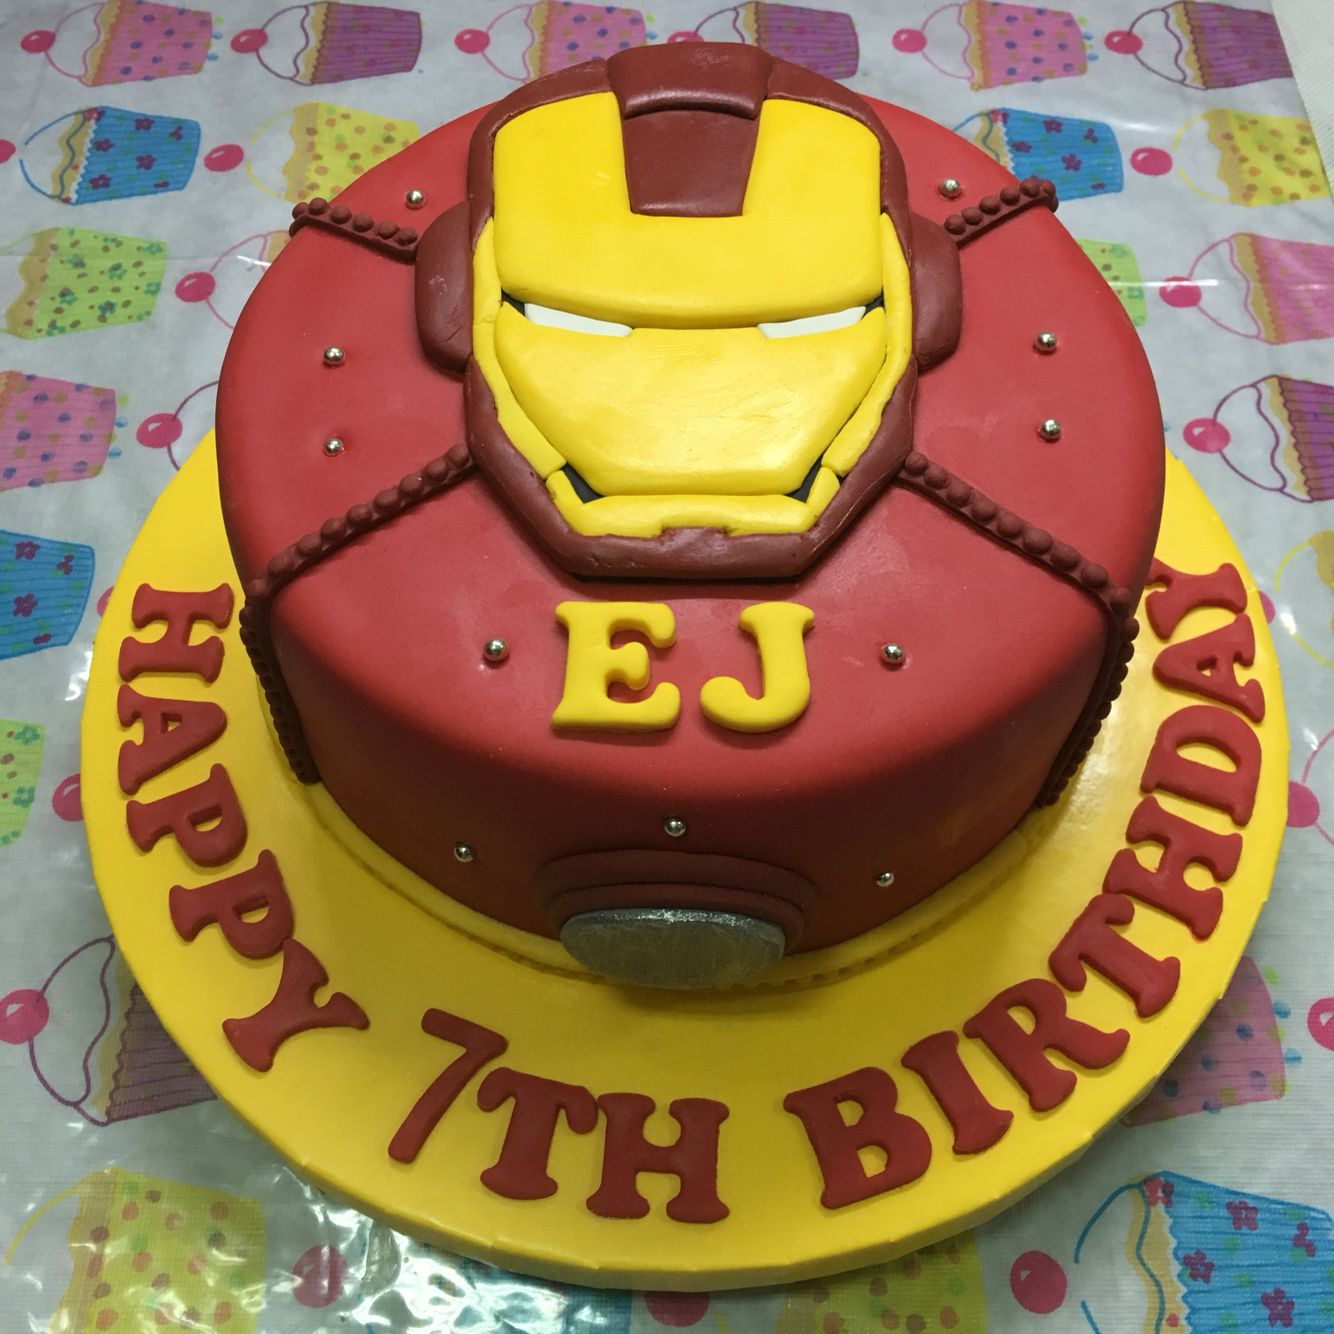 Our Very Own Ironman Cake For Ej S 7th Bday With Images